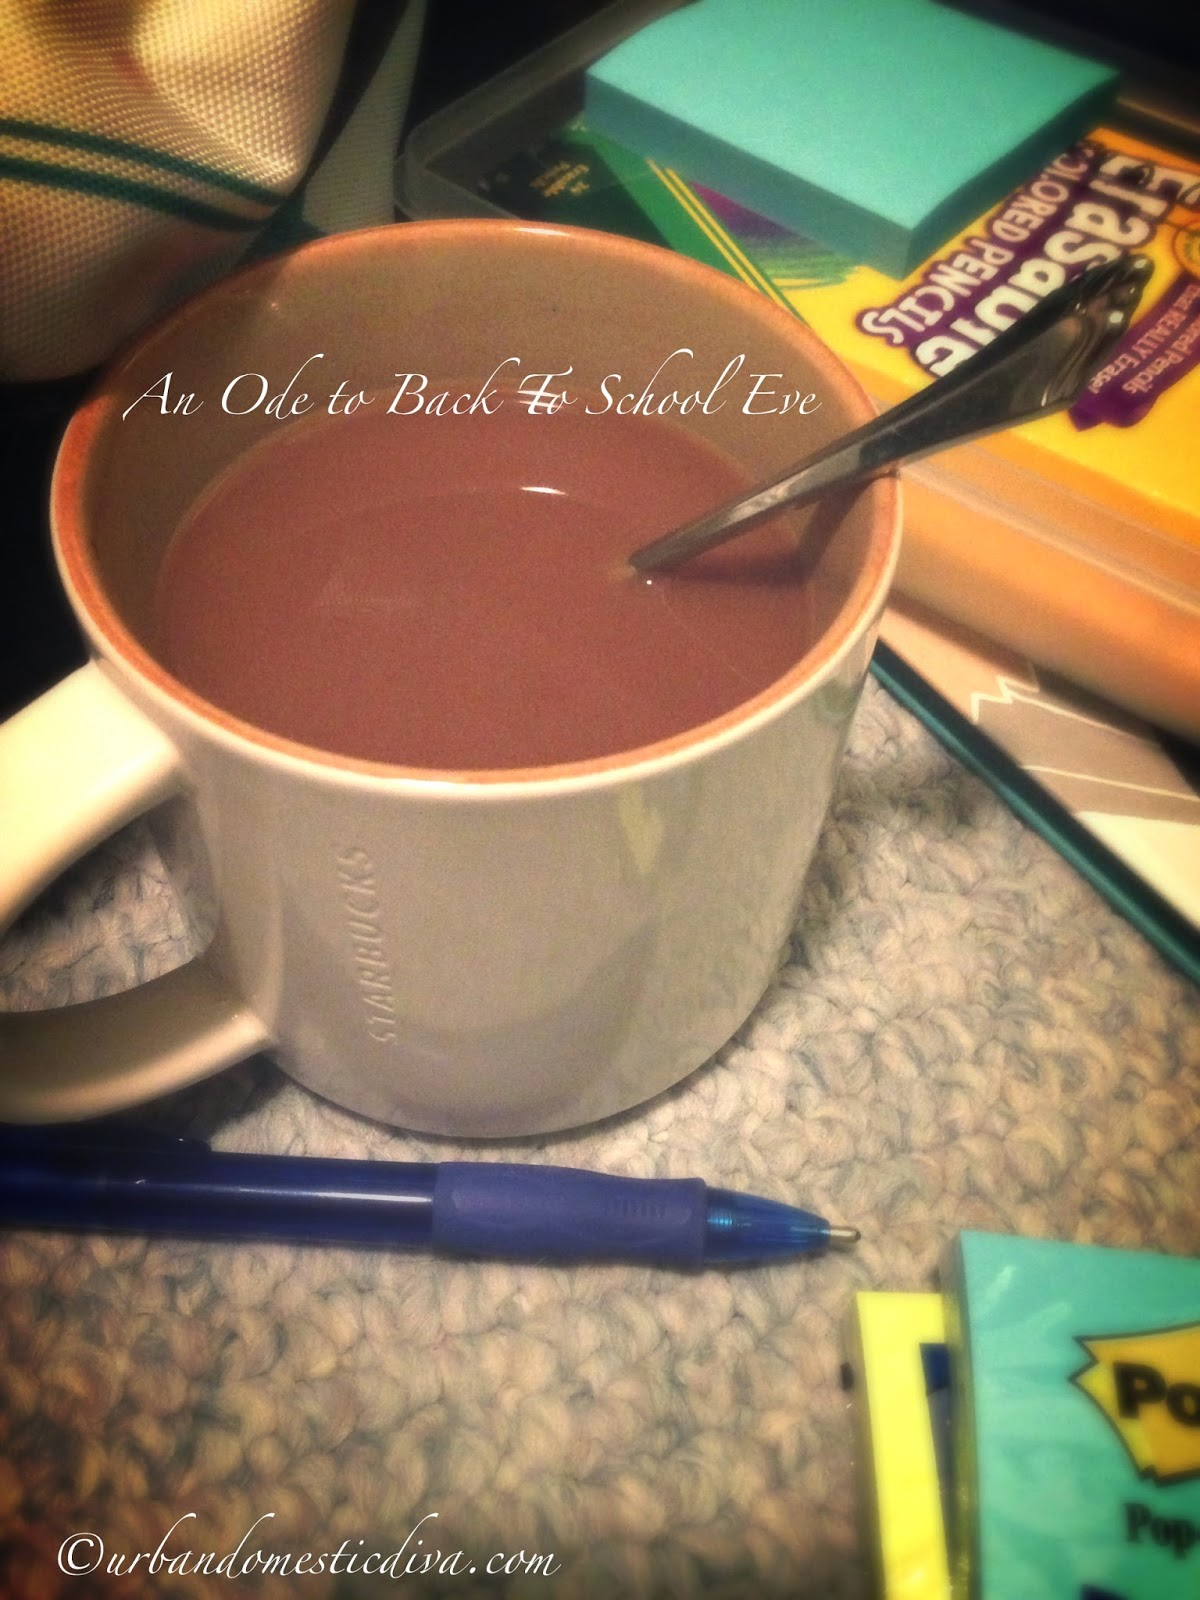 Back to School Tradition: An Ode to Back to School Eve